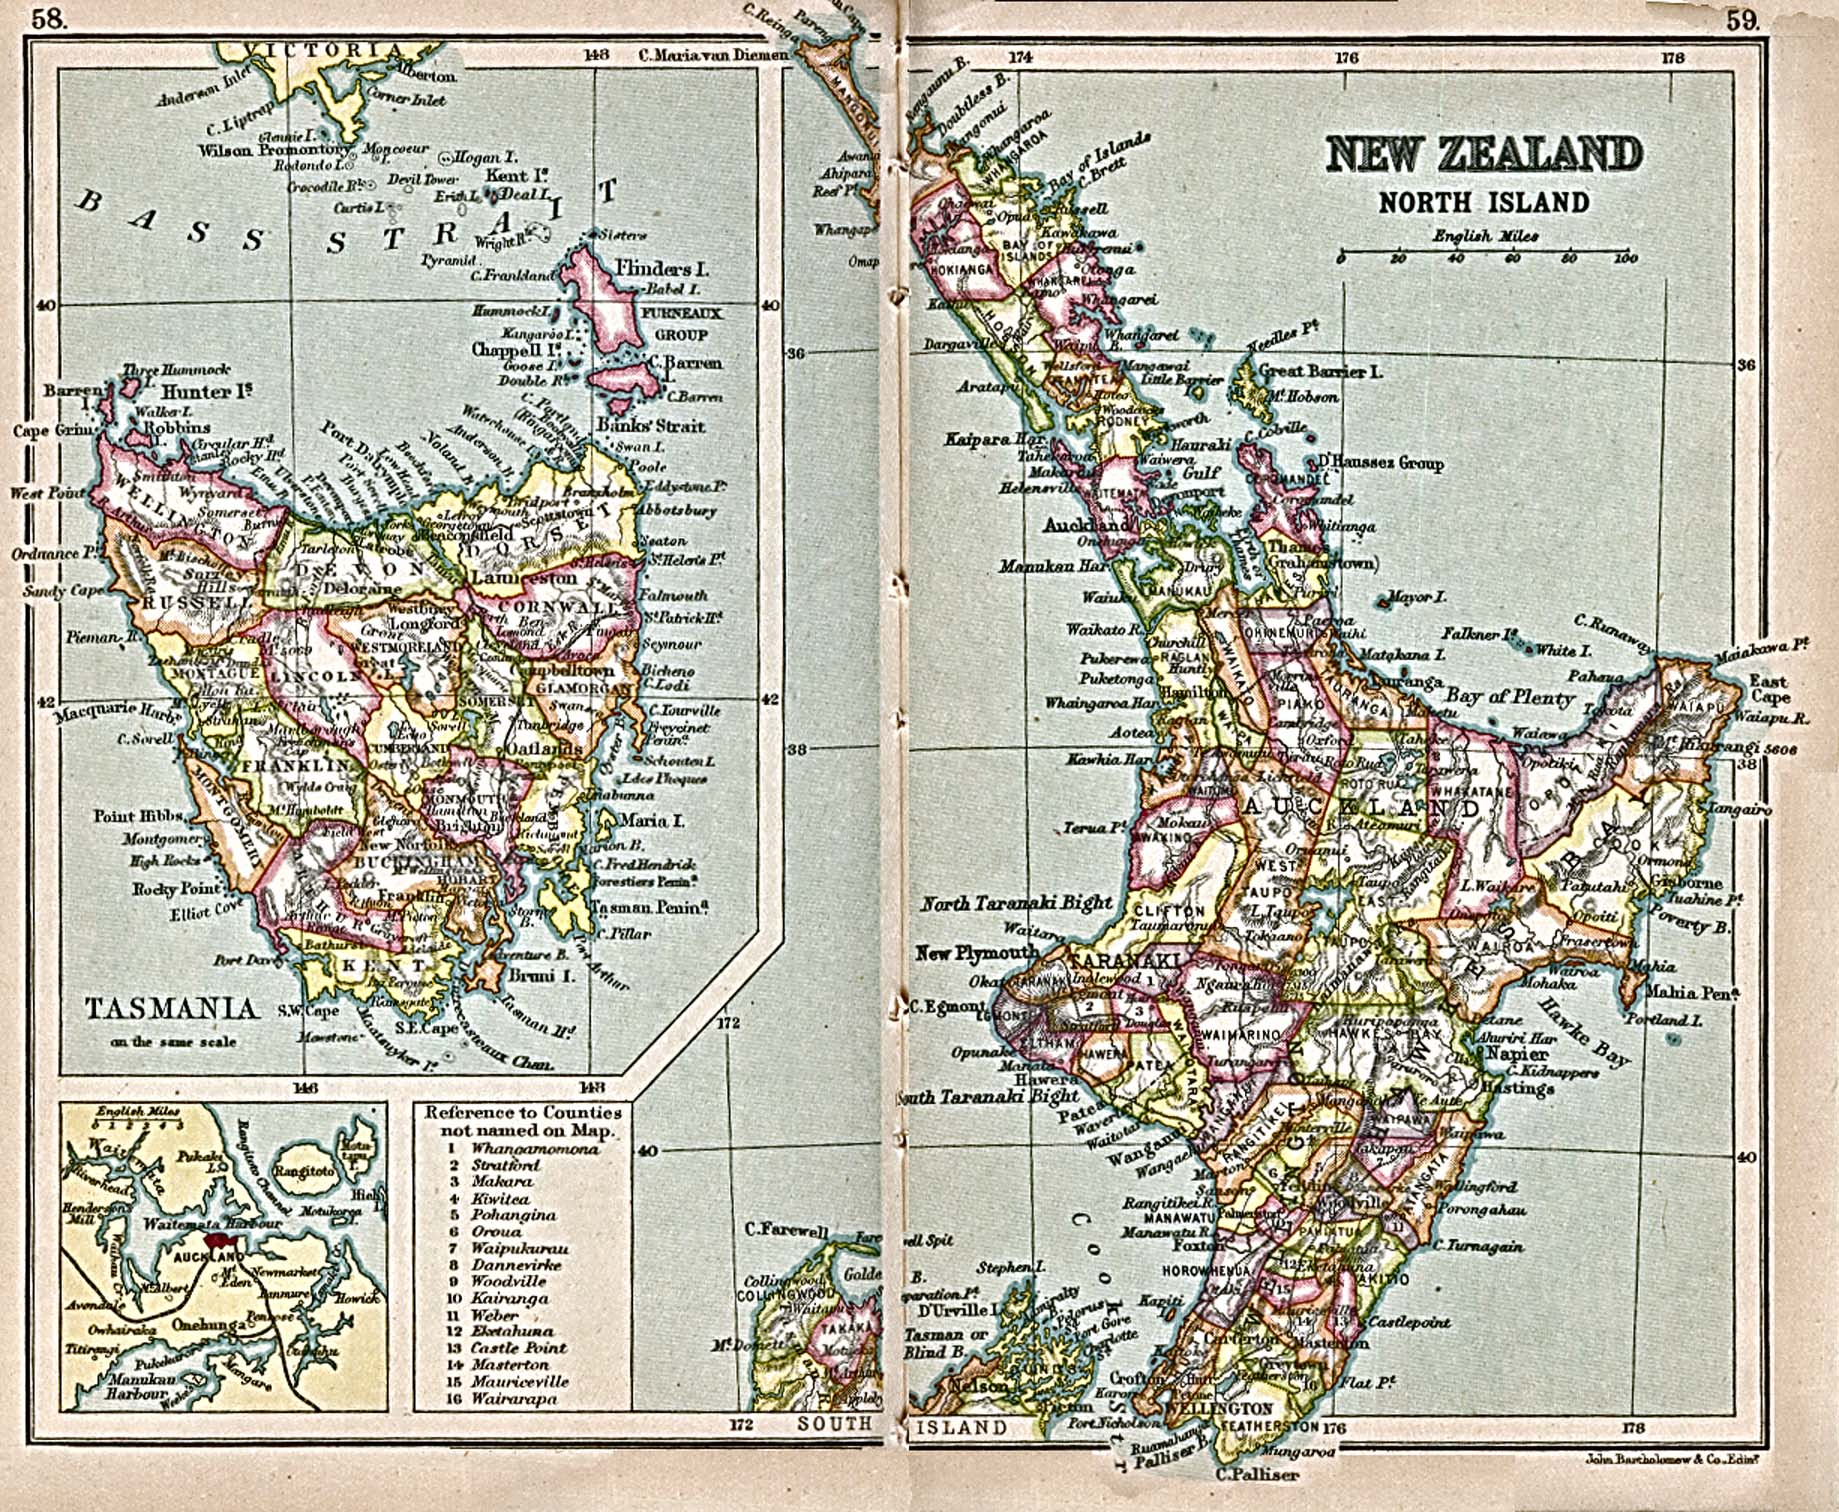 Detailed Map Of New Zealand North Island.1up Travel Historical Maps Of Australia And The Pacific New